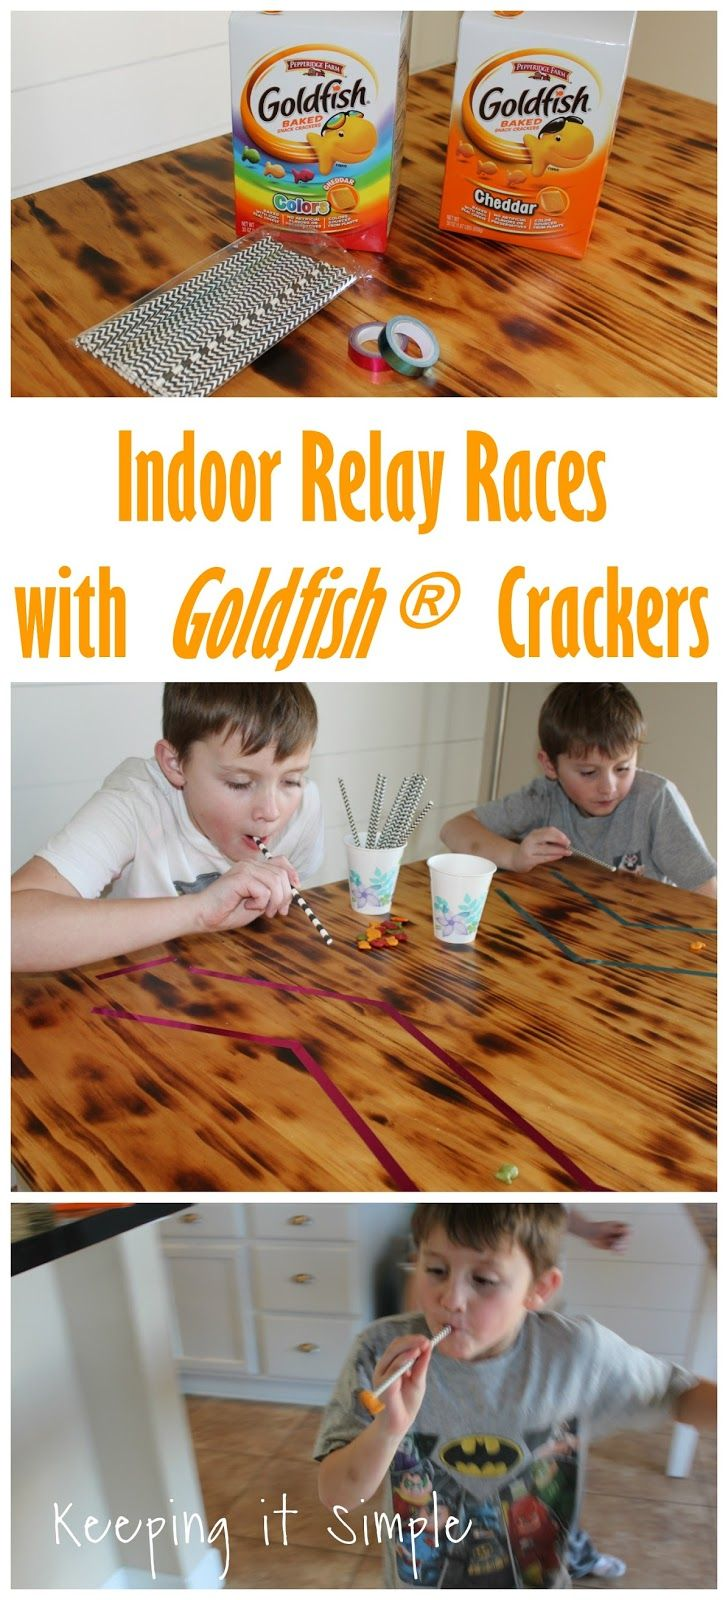 Indoor activities for kids- relay races with Goldfish® crackers #GoldfishGameTime AD @walmart